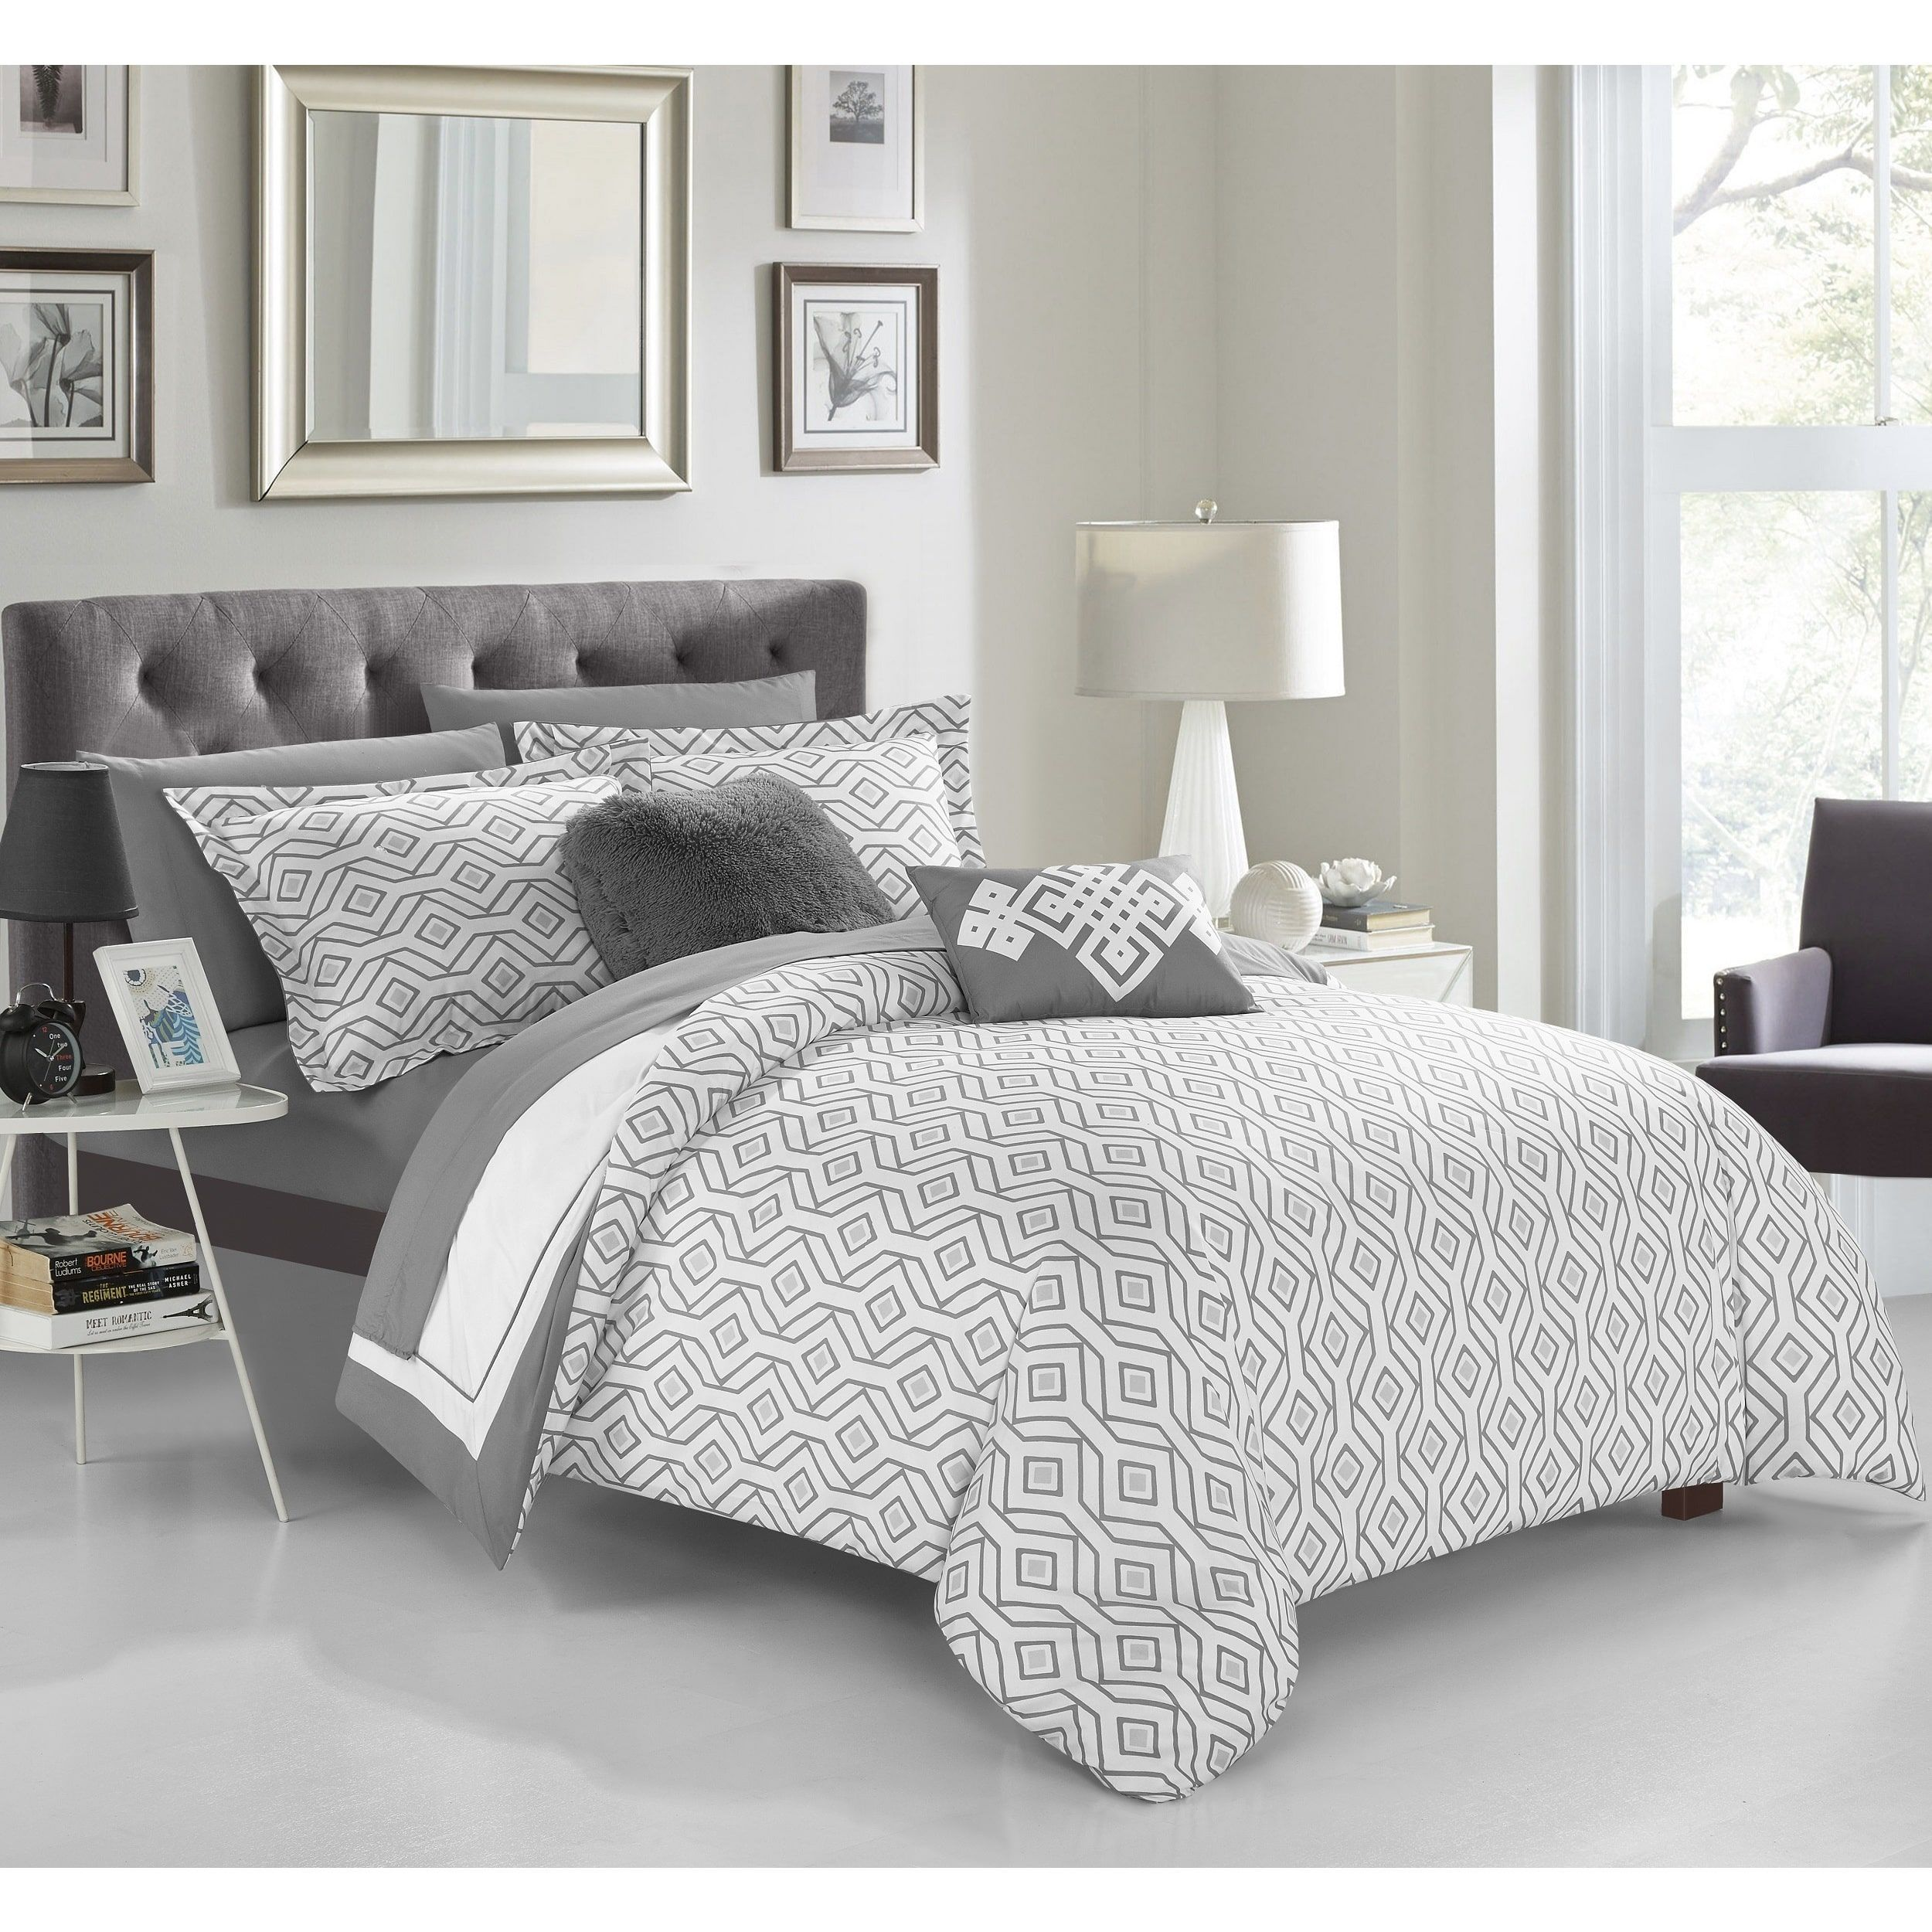 Chic Home Grey 9 Piece Complete Bed In A Bag Reversible Comforter